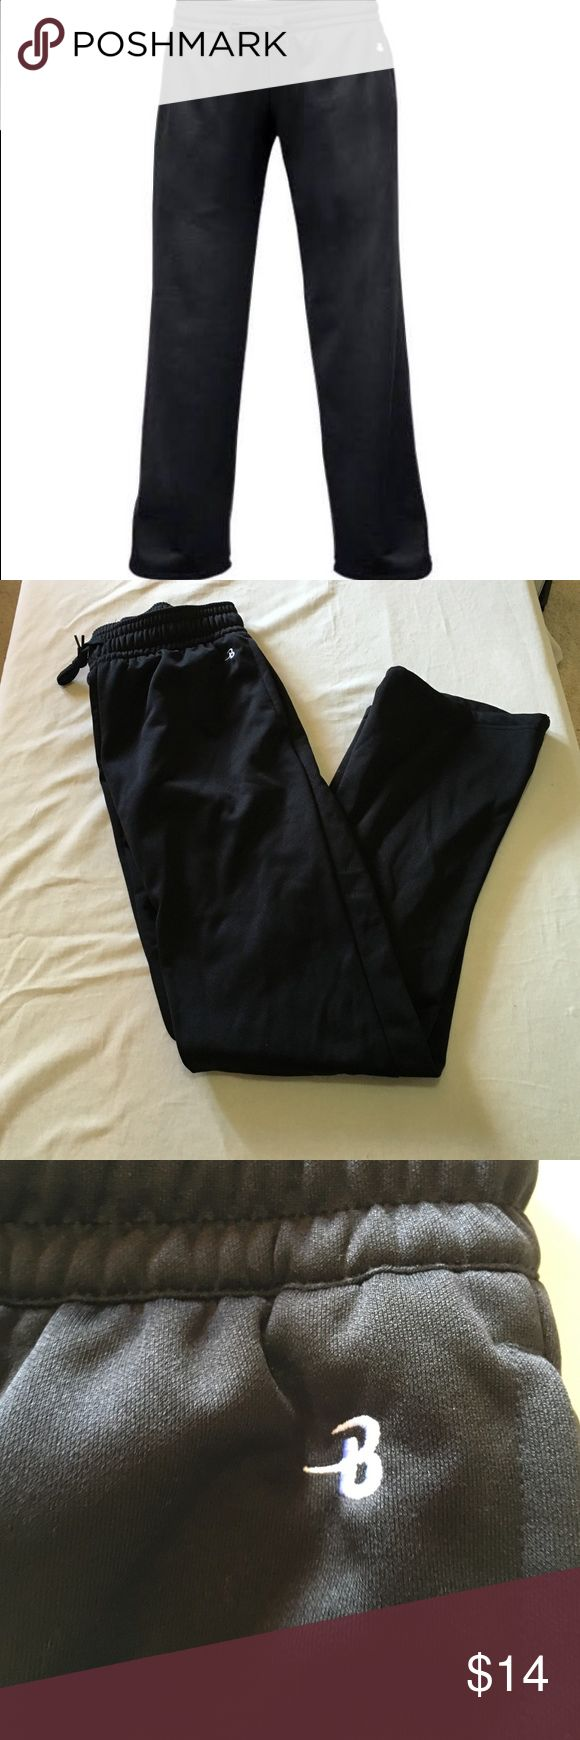 Badger sport black women's sweatpants These have never been worn and are in perfect condition. Badger sport Pants Track Pants & Joggers